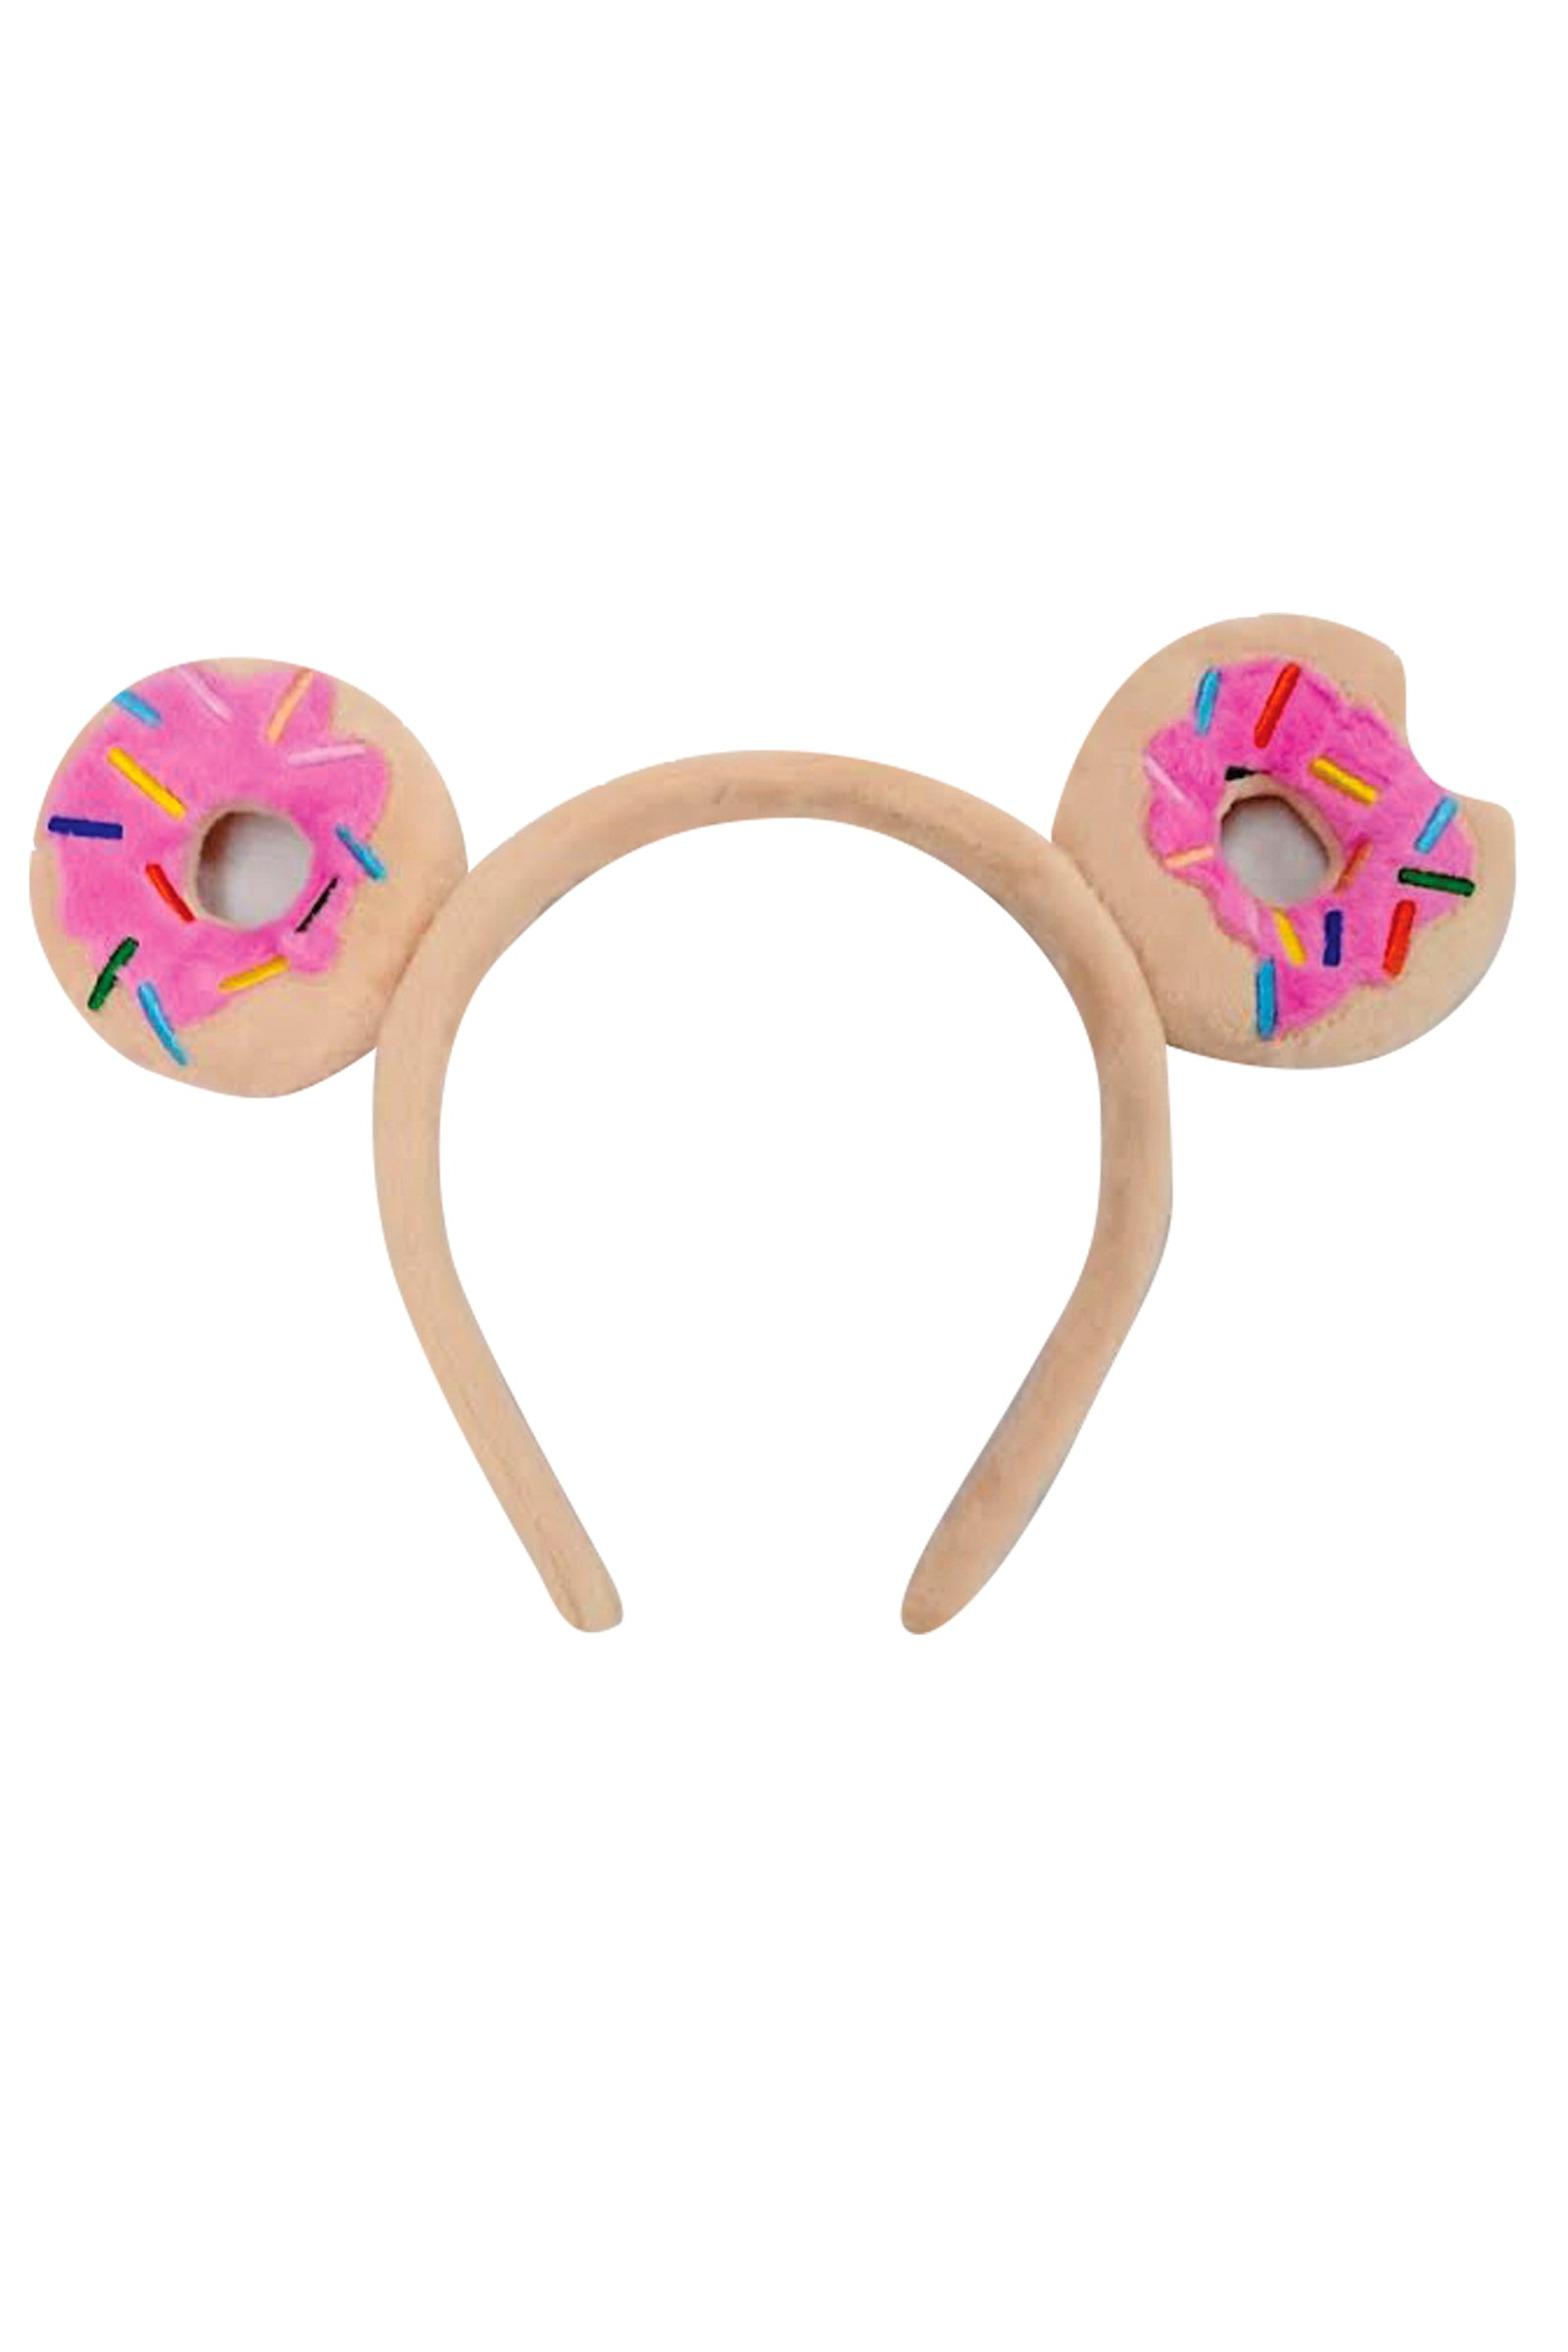 Donut and Sprinkles Headband